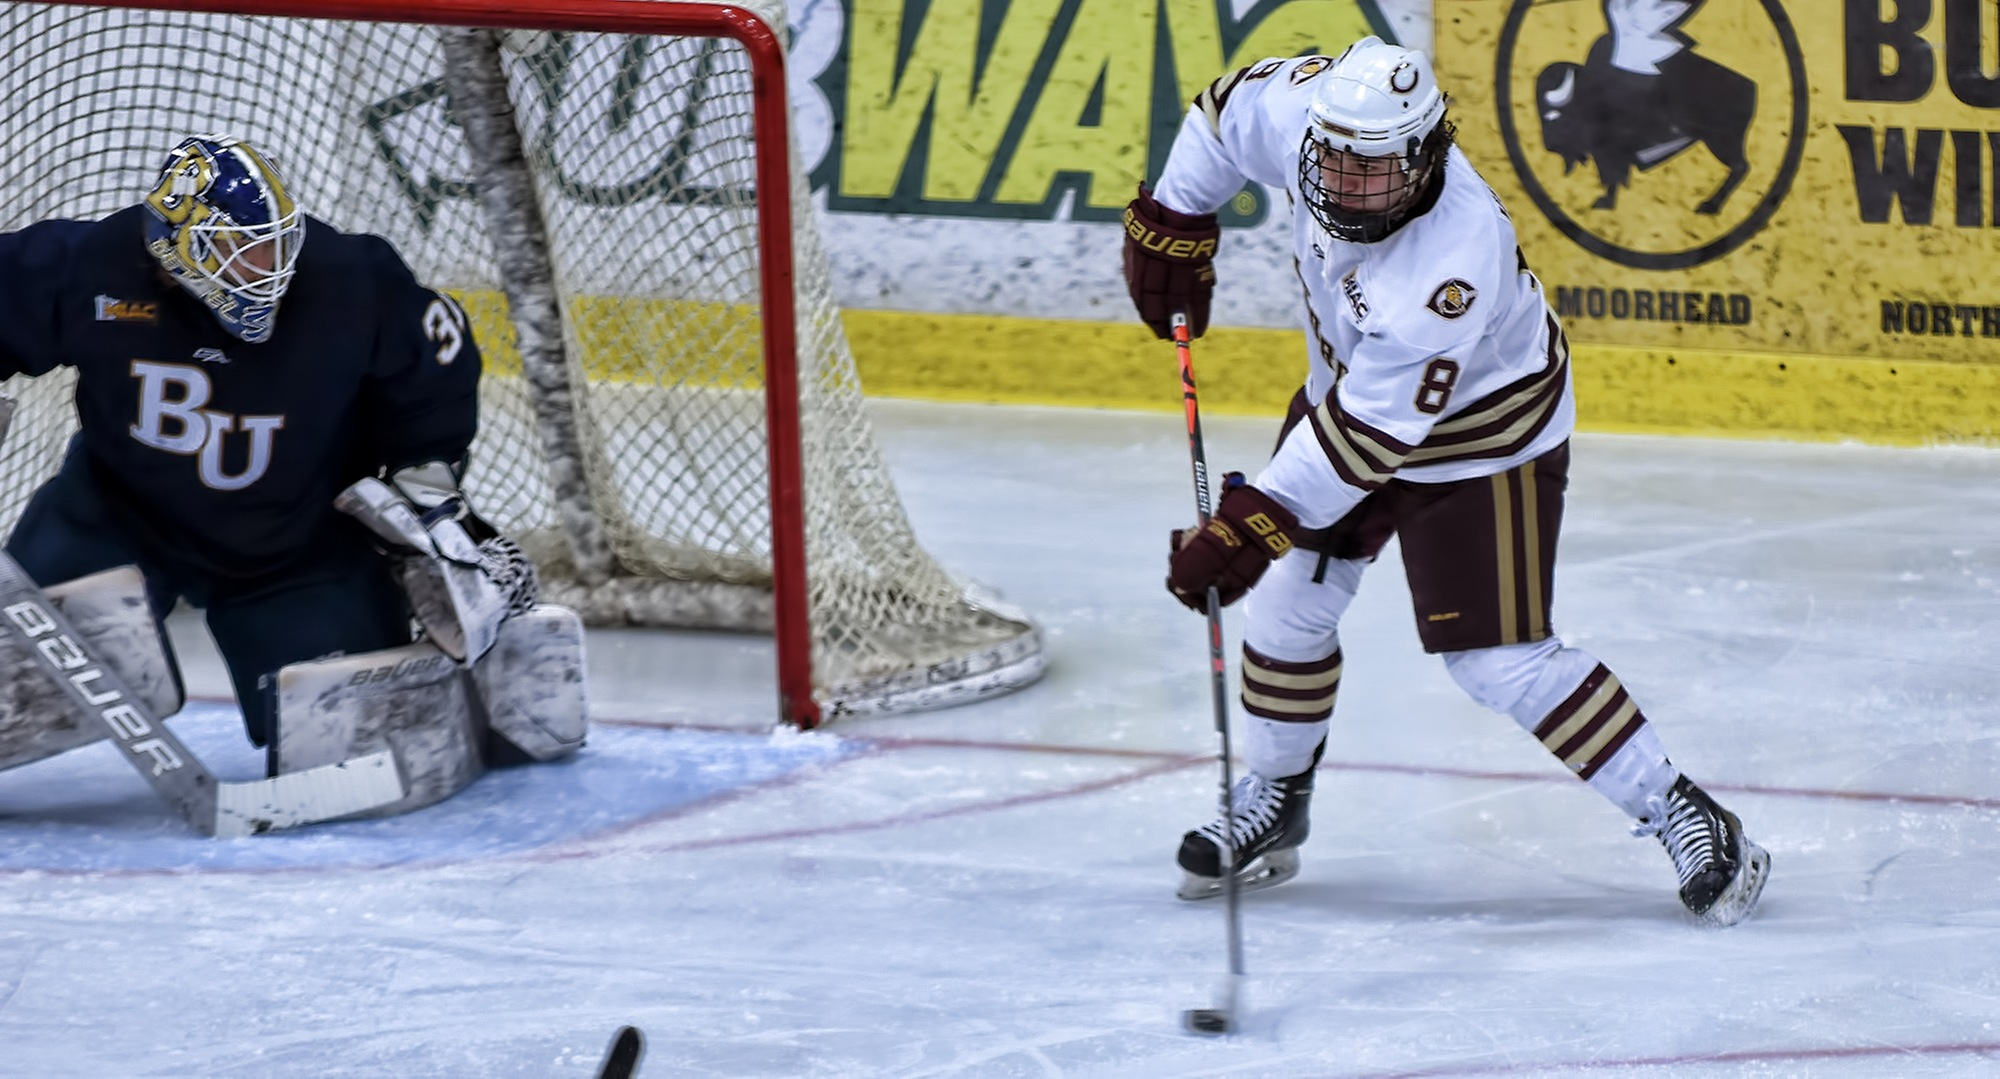 Senior Aaron Herdt makes a centering pass during the first period of the Cobbers' game with Bethel. Herdt scored both game-winning goals in the sweep over the Royals.